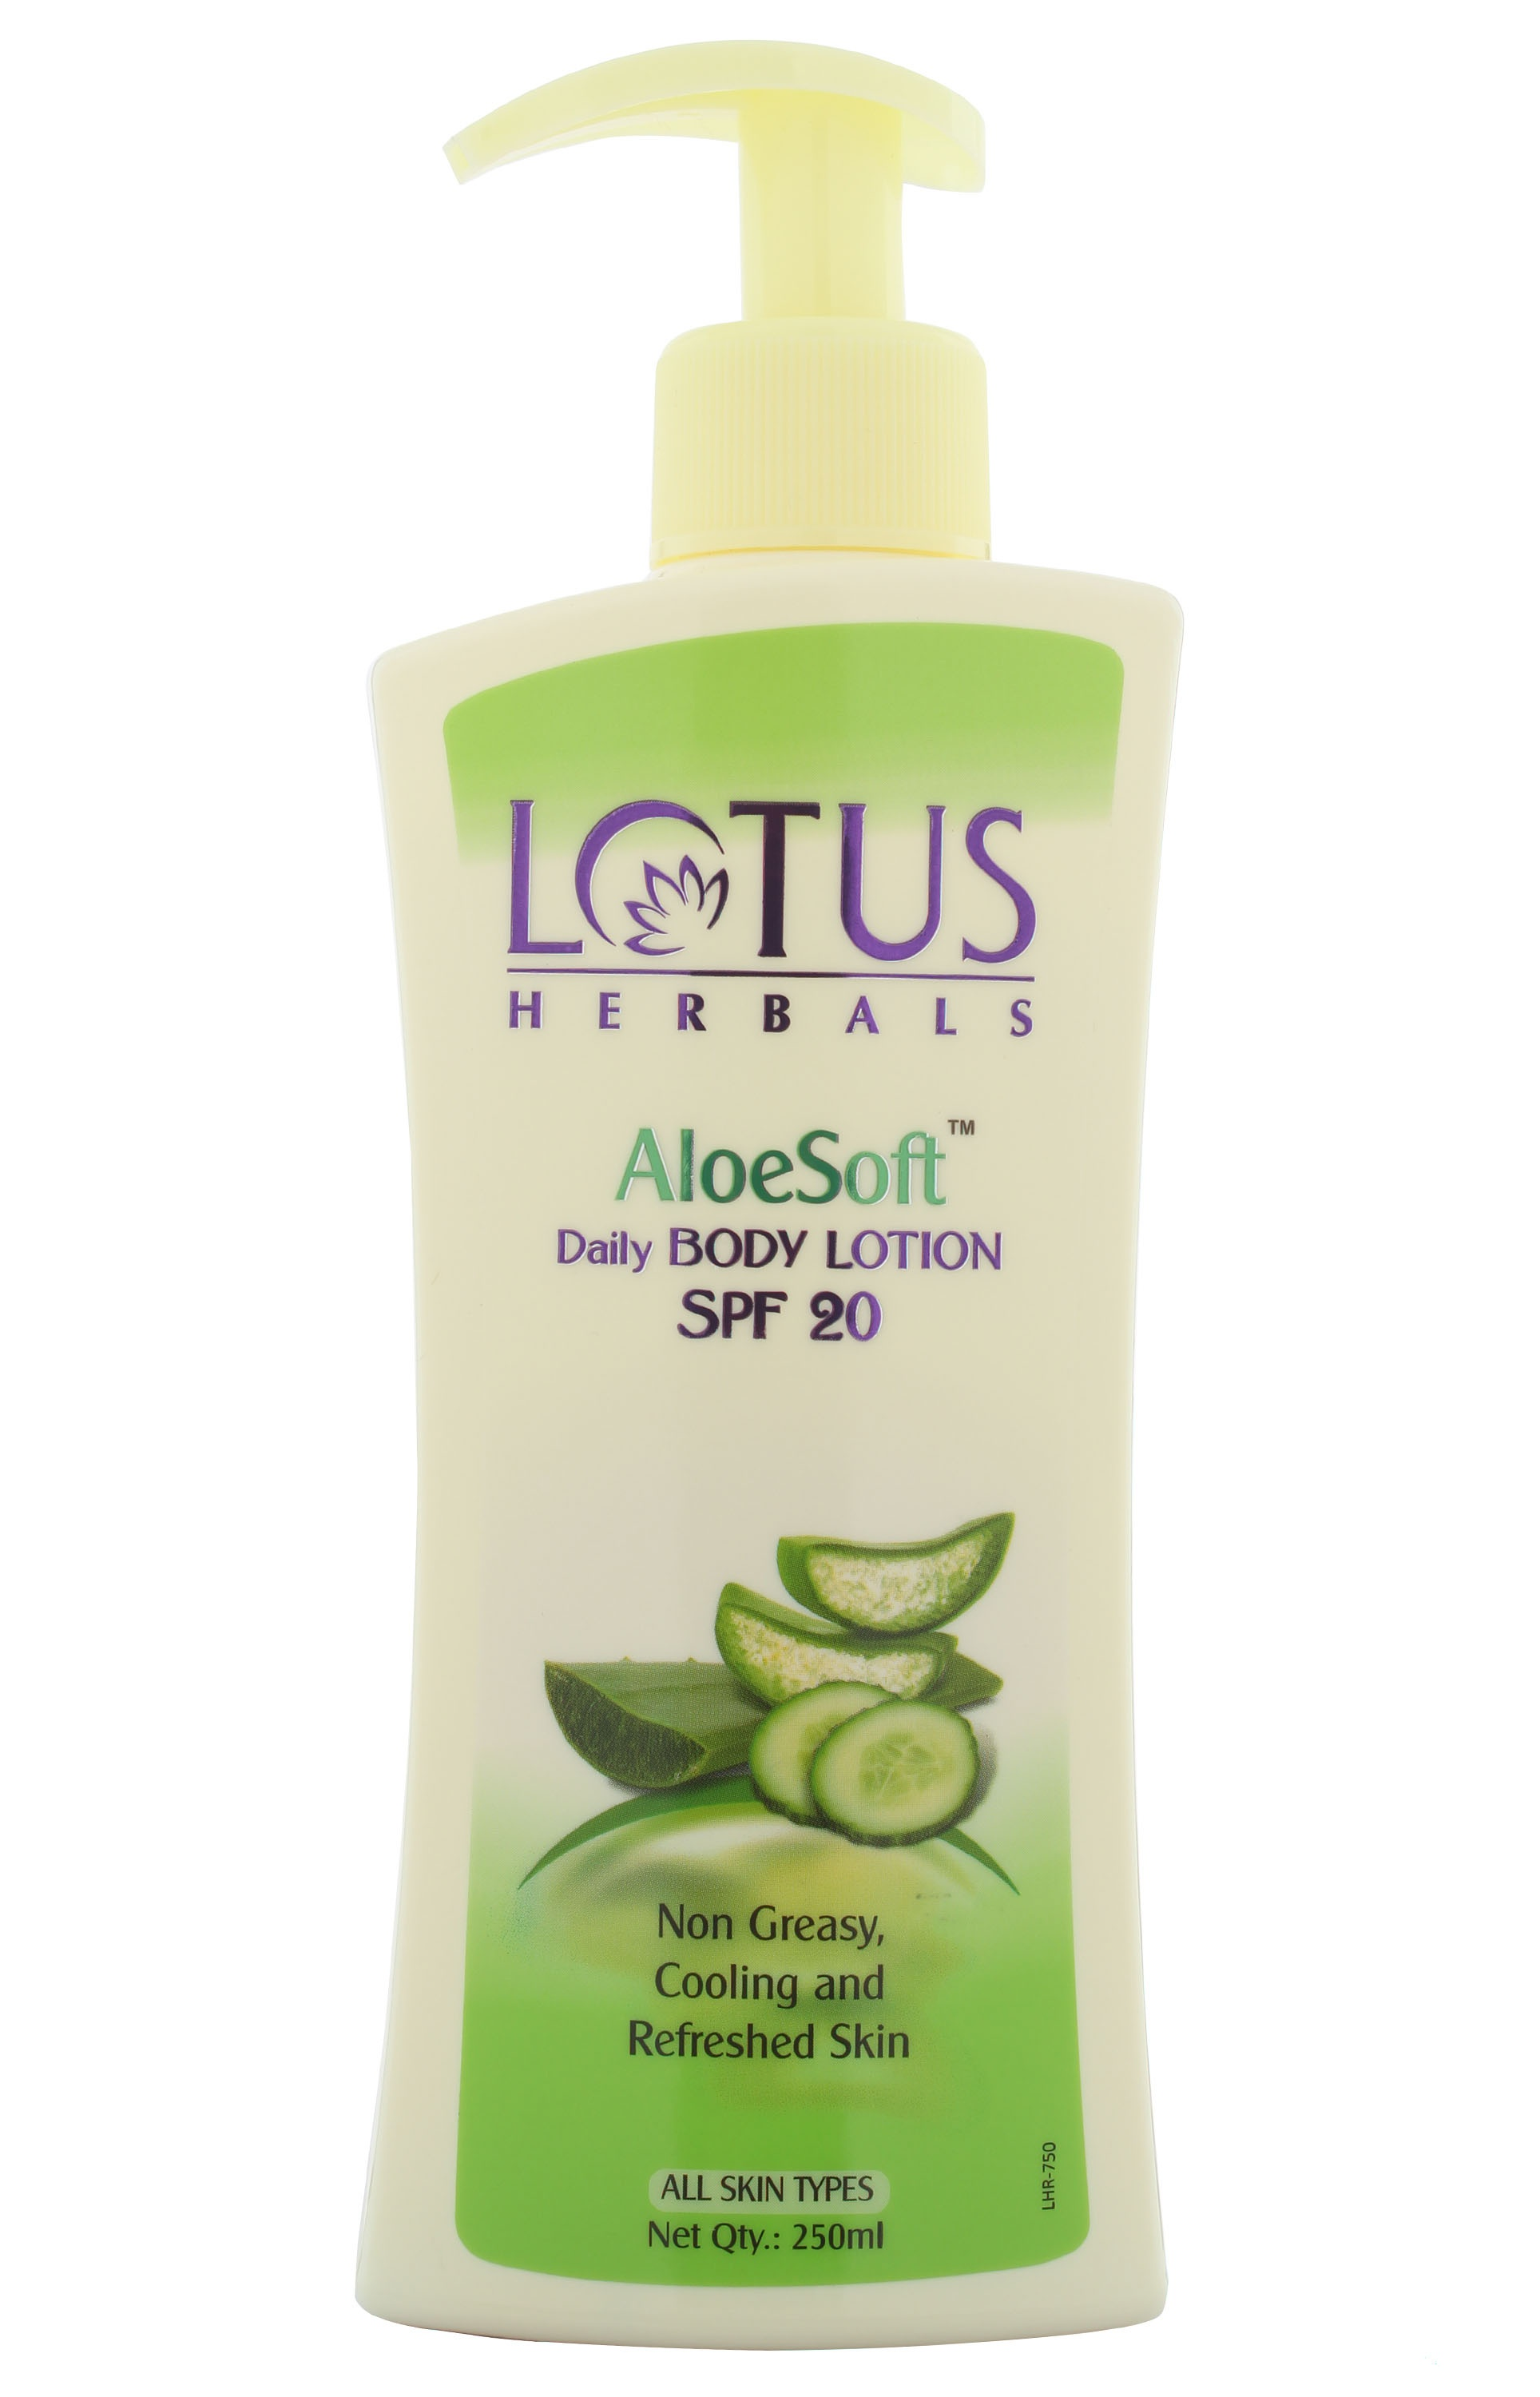 Lotus Herbals Aloesoft Daily Body Lotion Spf 20